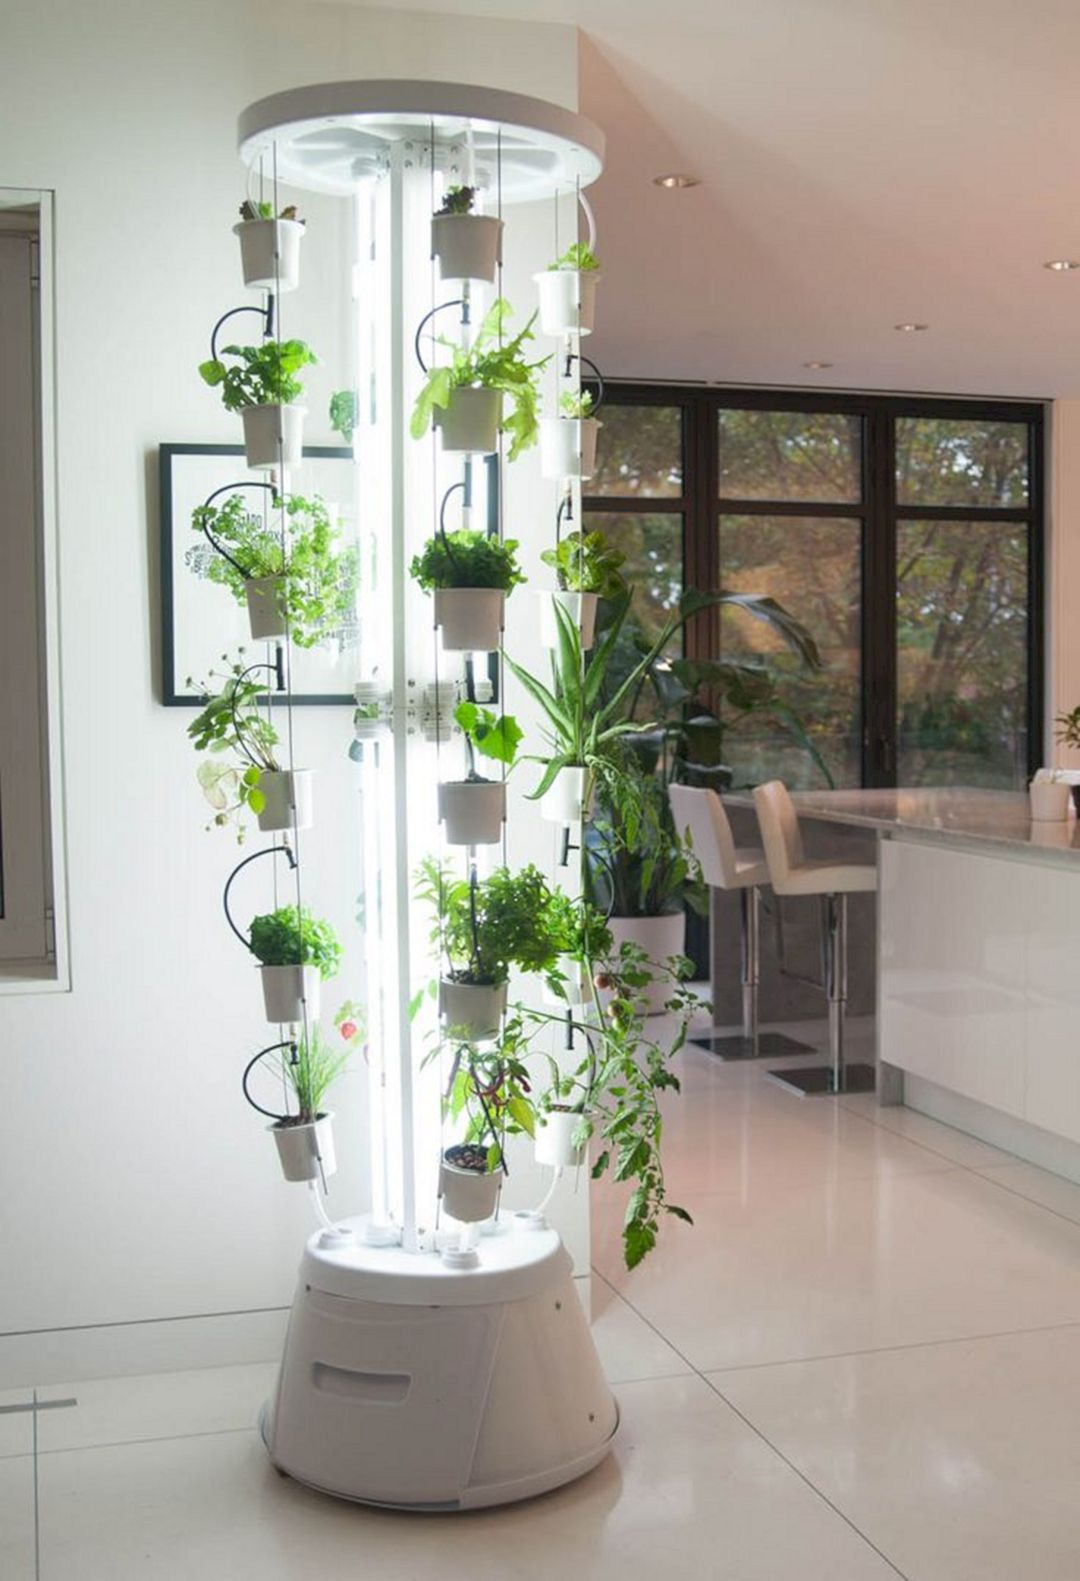 22 Awesome Indoor Hydroponic Wall Garden Design Ideas Hydroponic